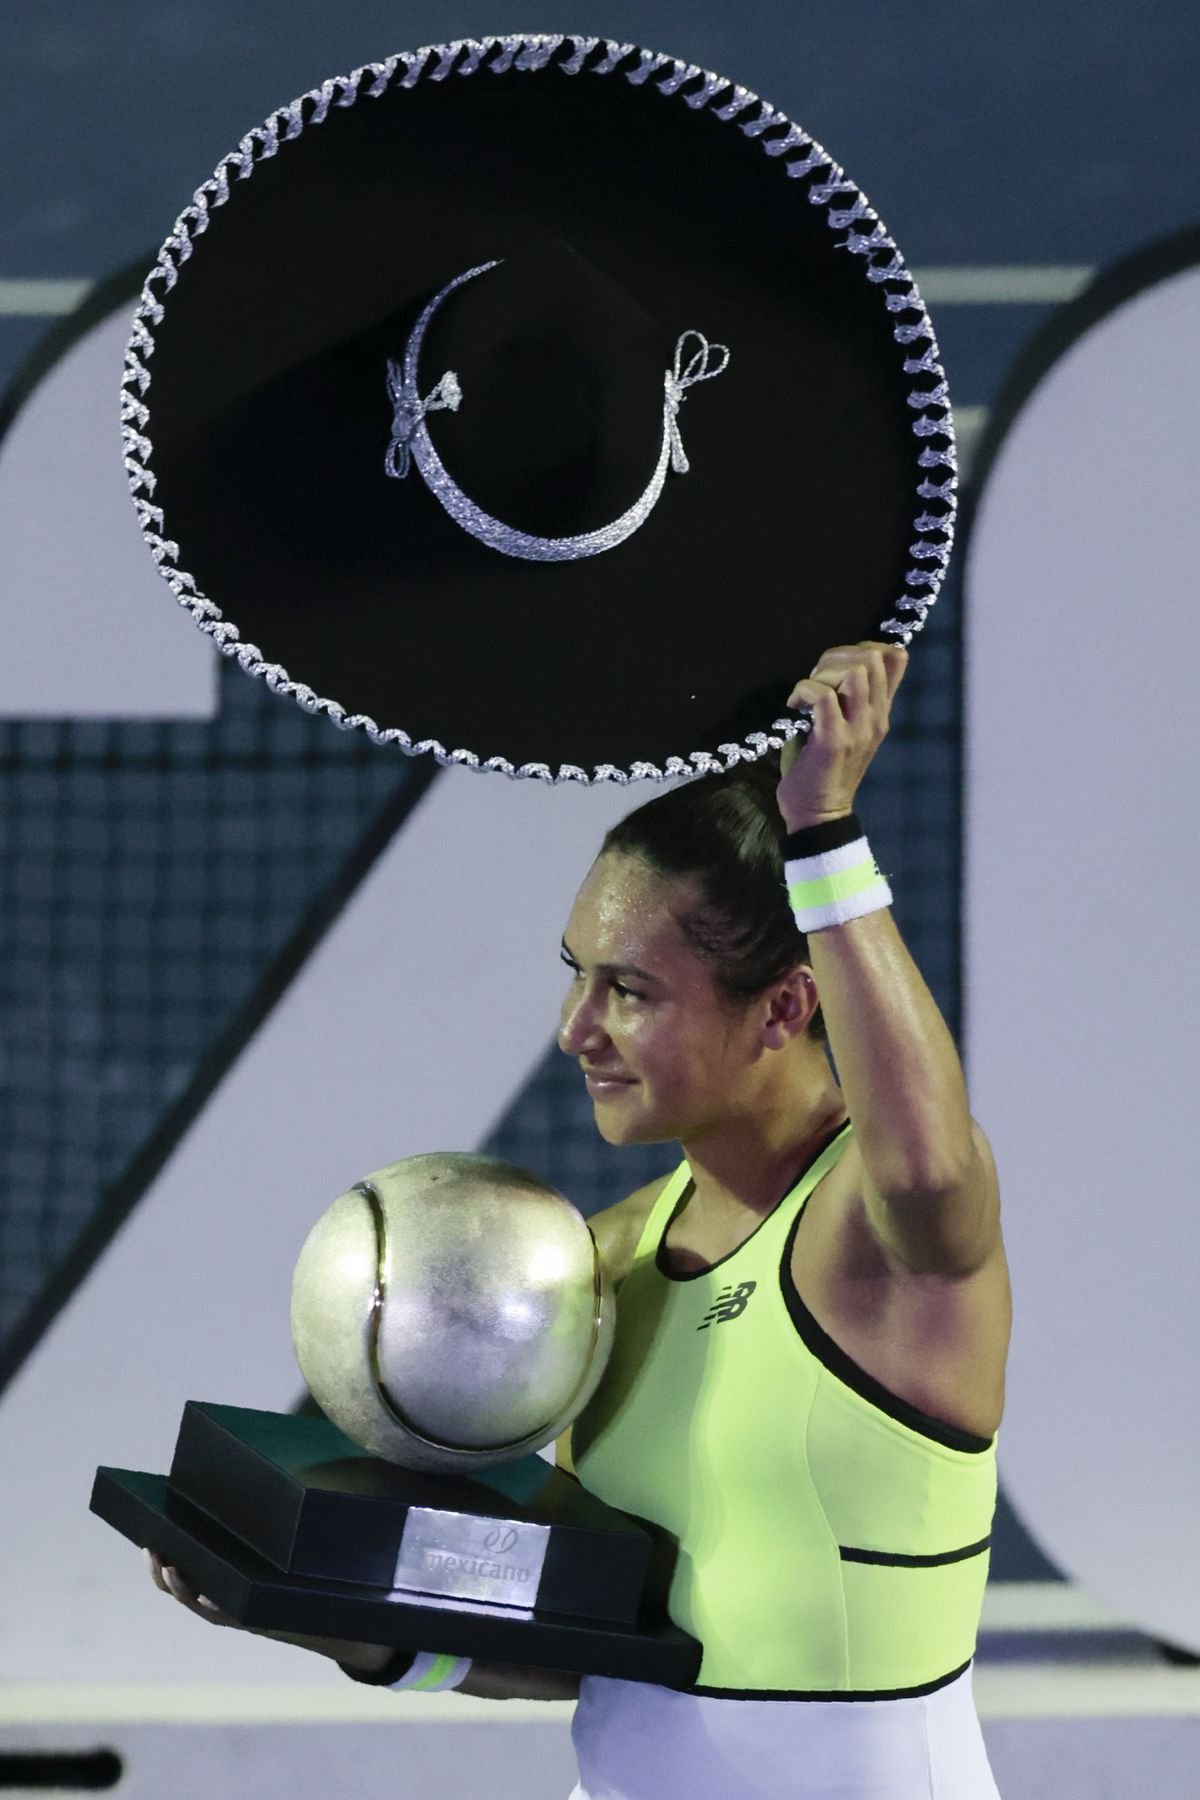 Hats off to Heather. The tennis star removes her sombrero after receiving her trophy for winning the Mexican Open against Canada's Leylah Fernandez in Acapulco.  (AP Photo/Rebecca Blackwell)